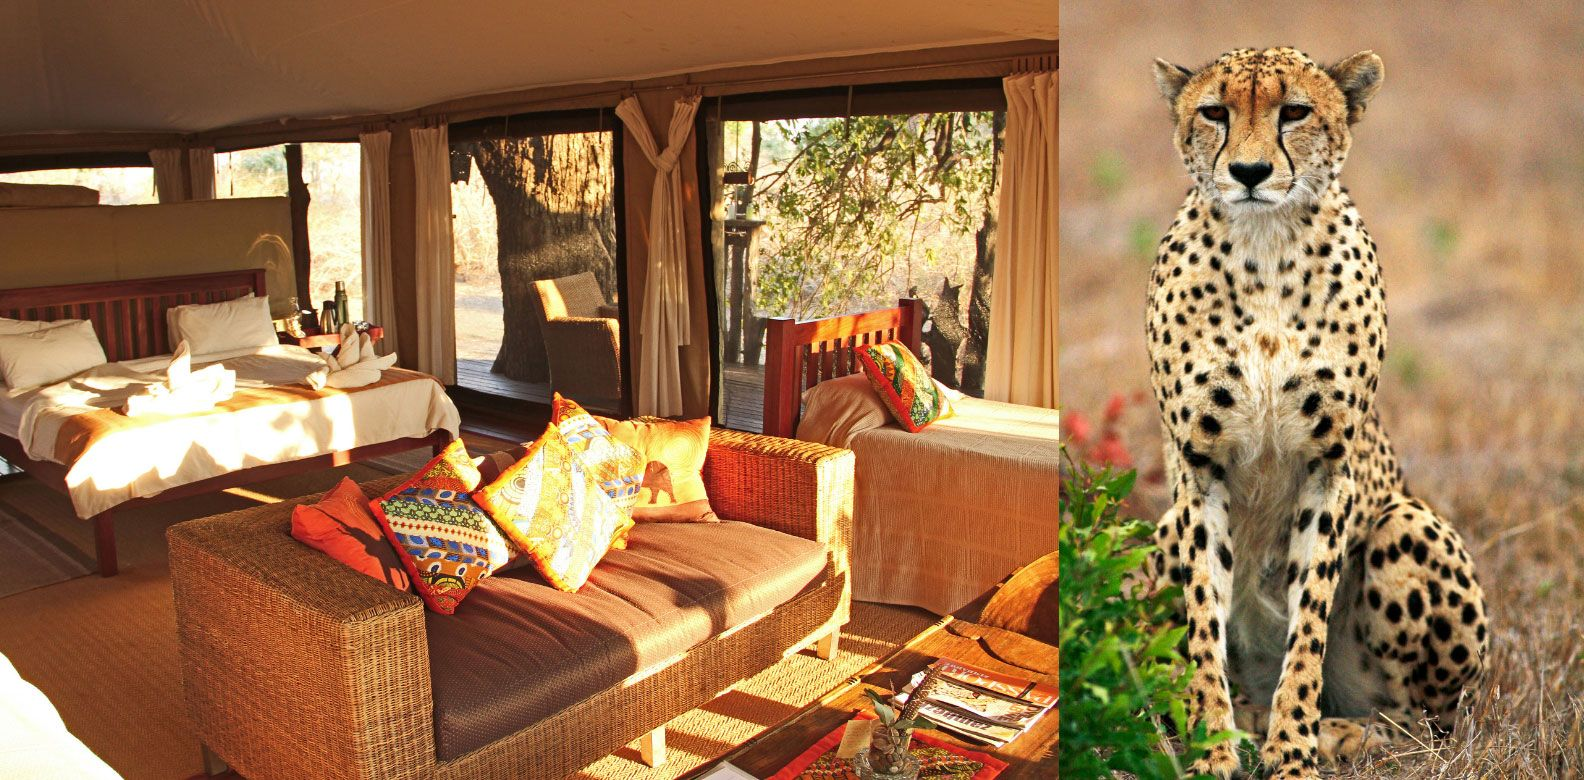 Wildlife Spotting & Glamping On These South African Safaris